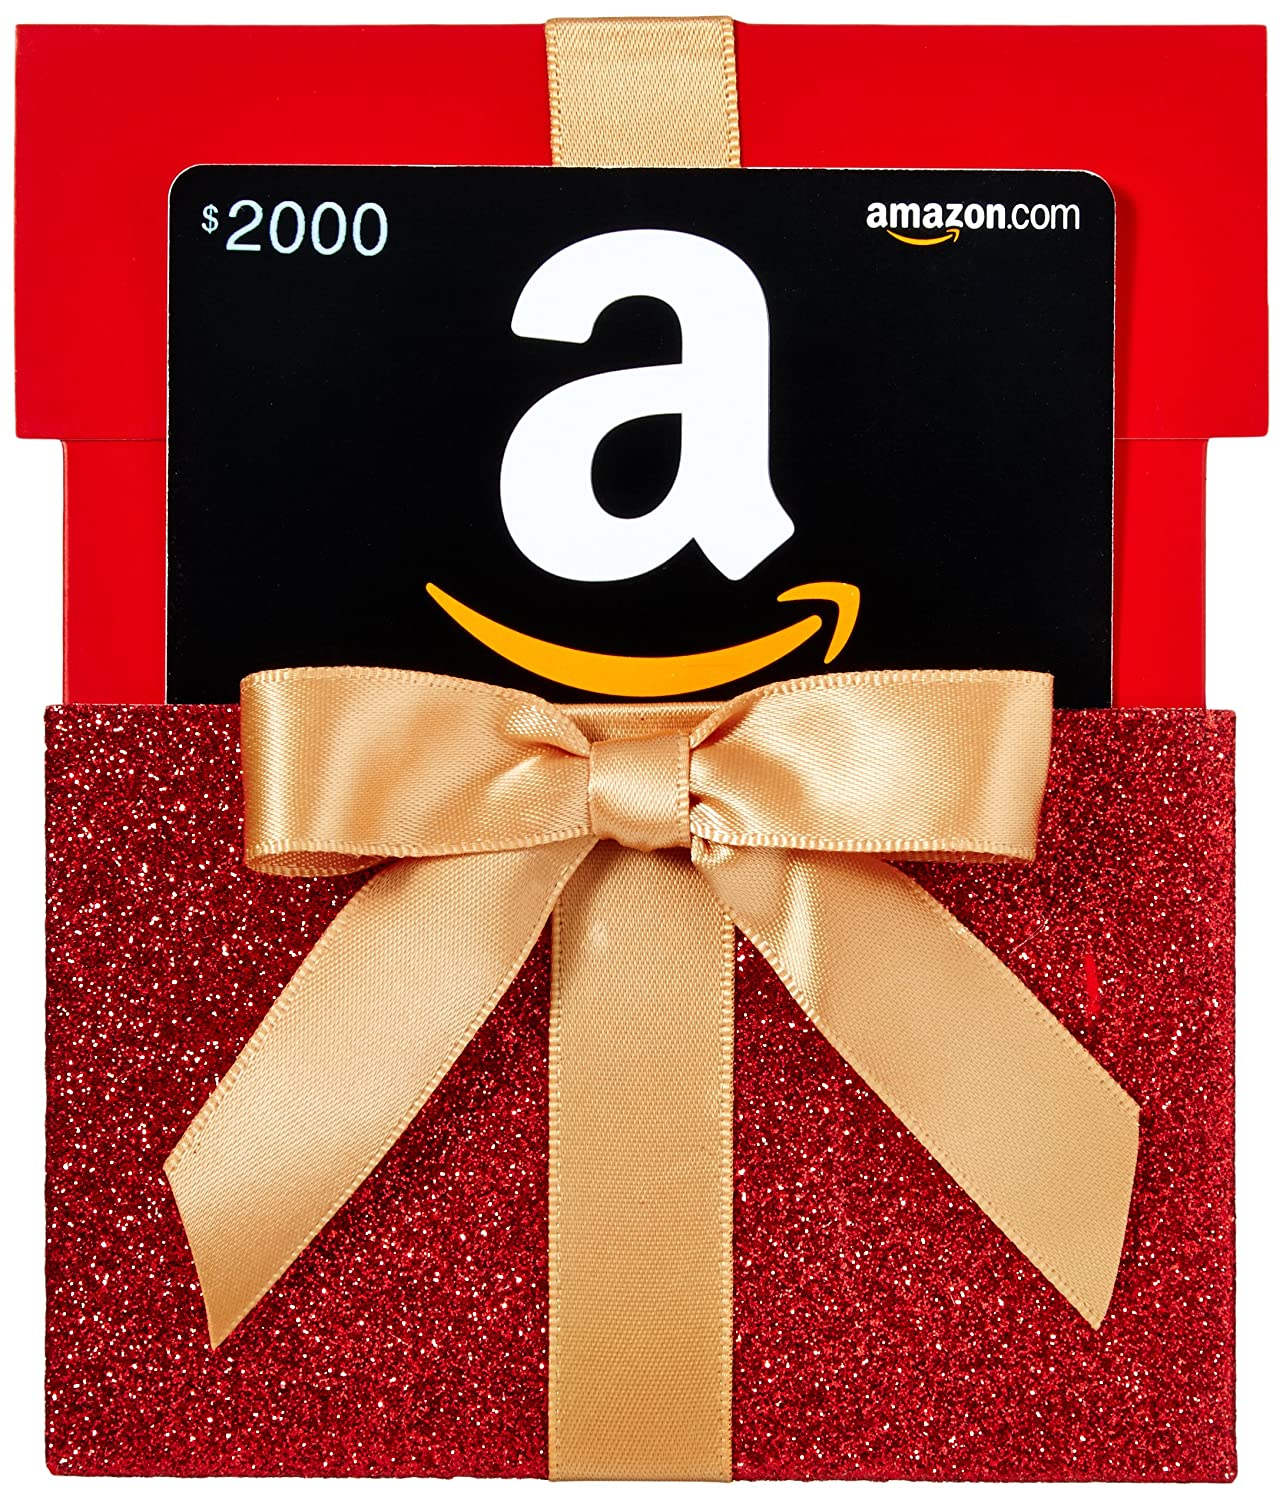 Amazon.com Gift Card - In Gift Box Reveal